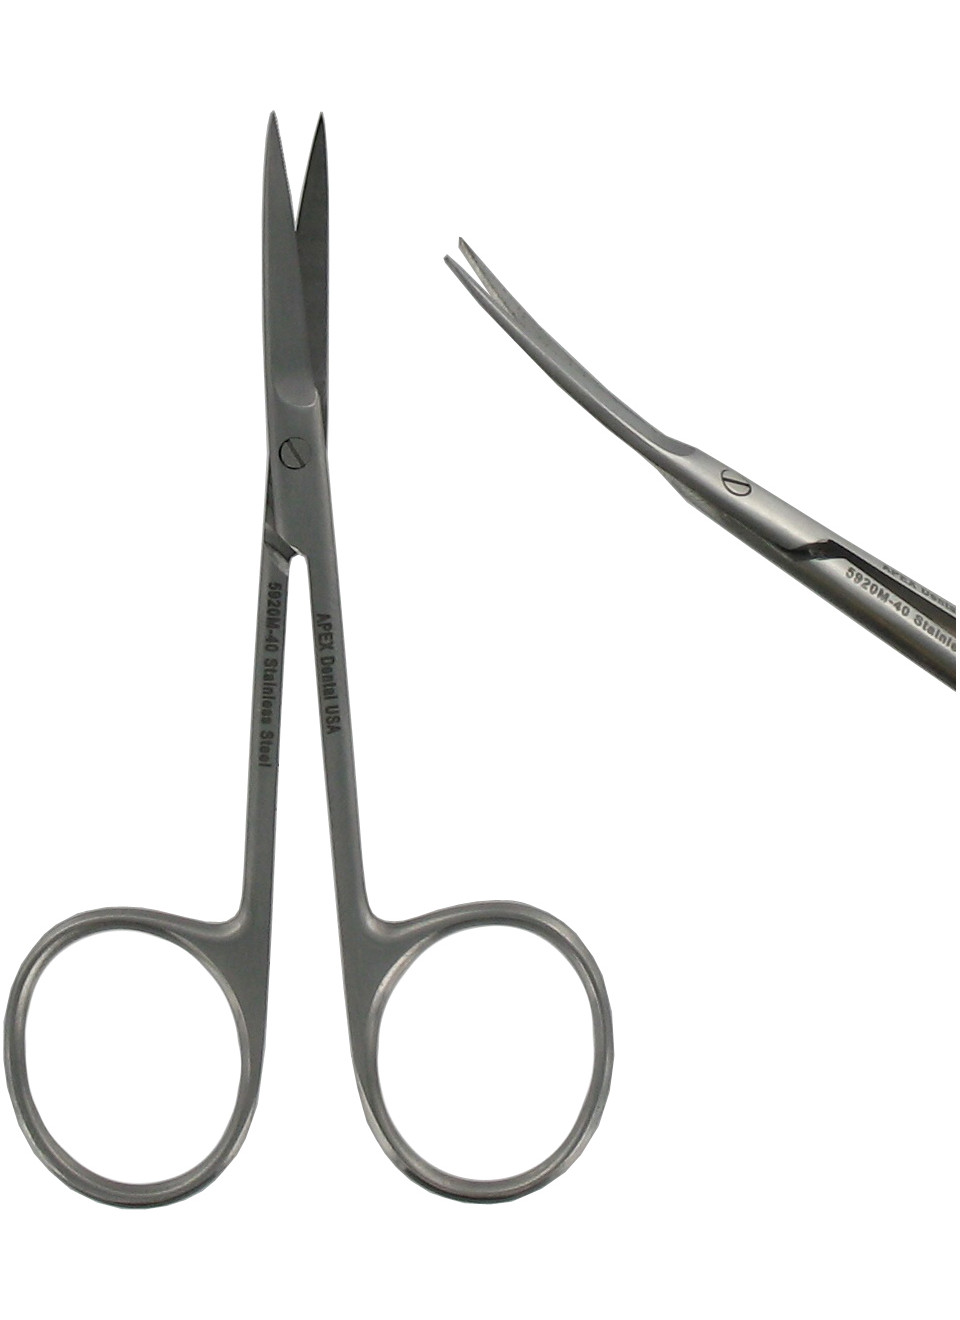 Gum Scissors Iris Curved Micro, Dental USA